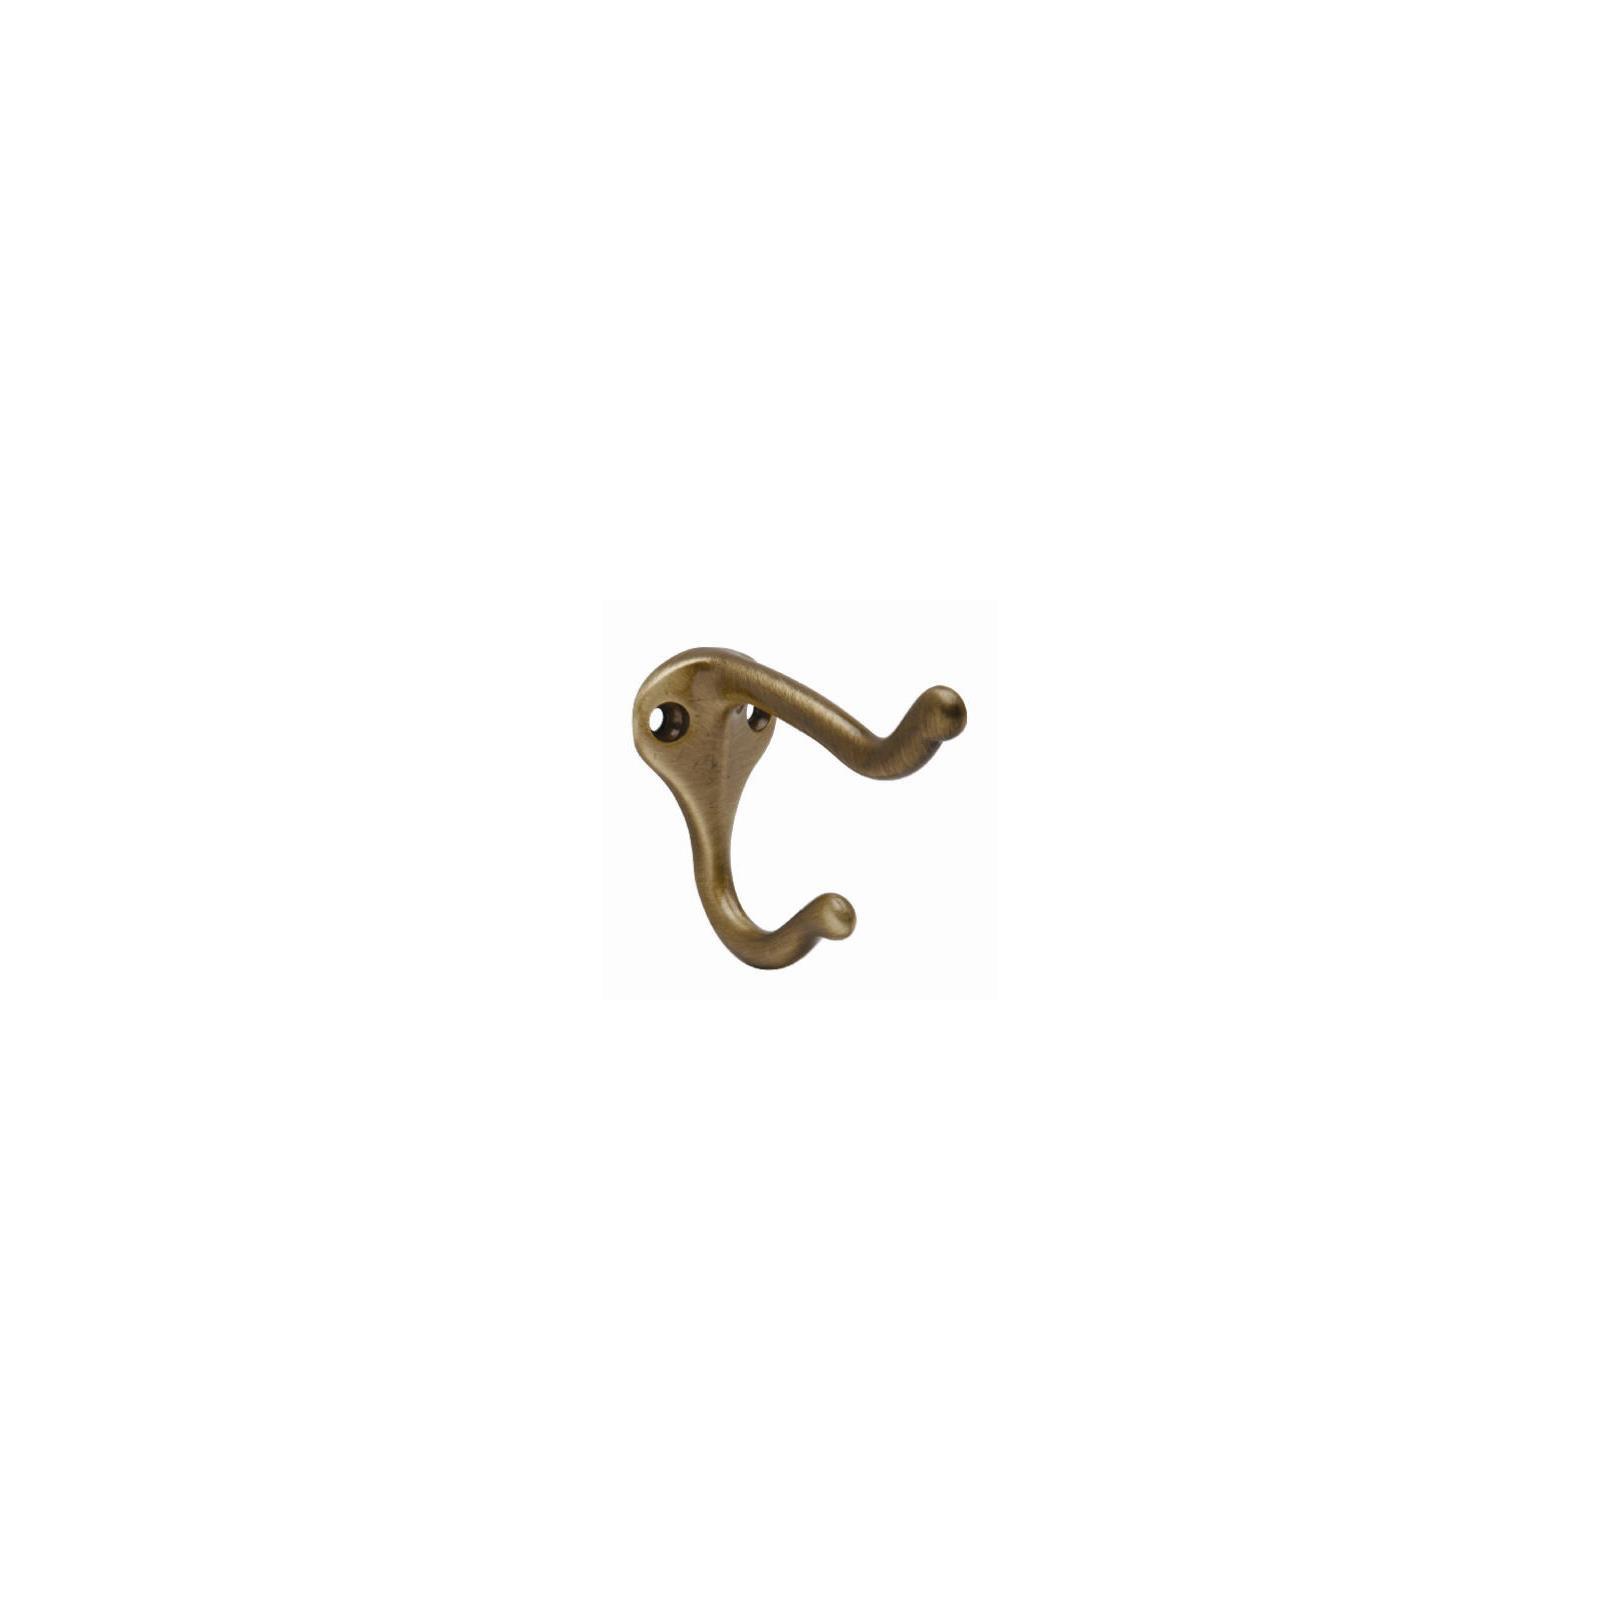 Schlage Lock SPS571MB-609 3-In. Antique Brass Coat & Hat Hook - Quantity 1